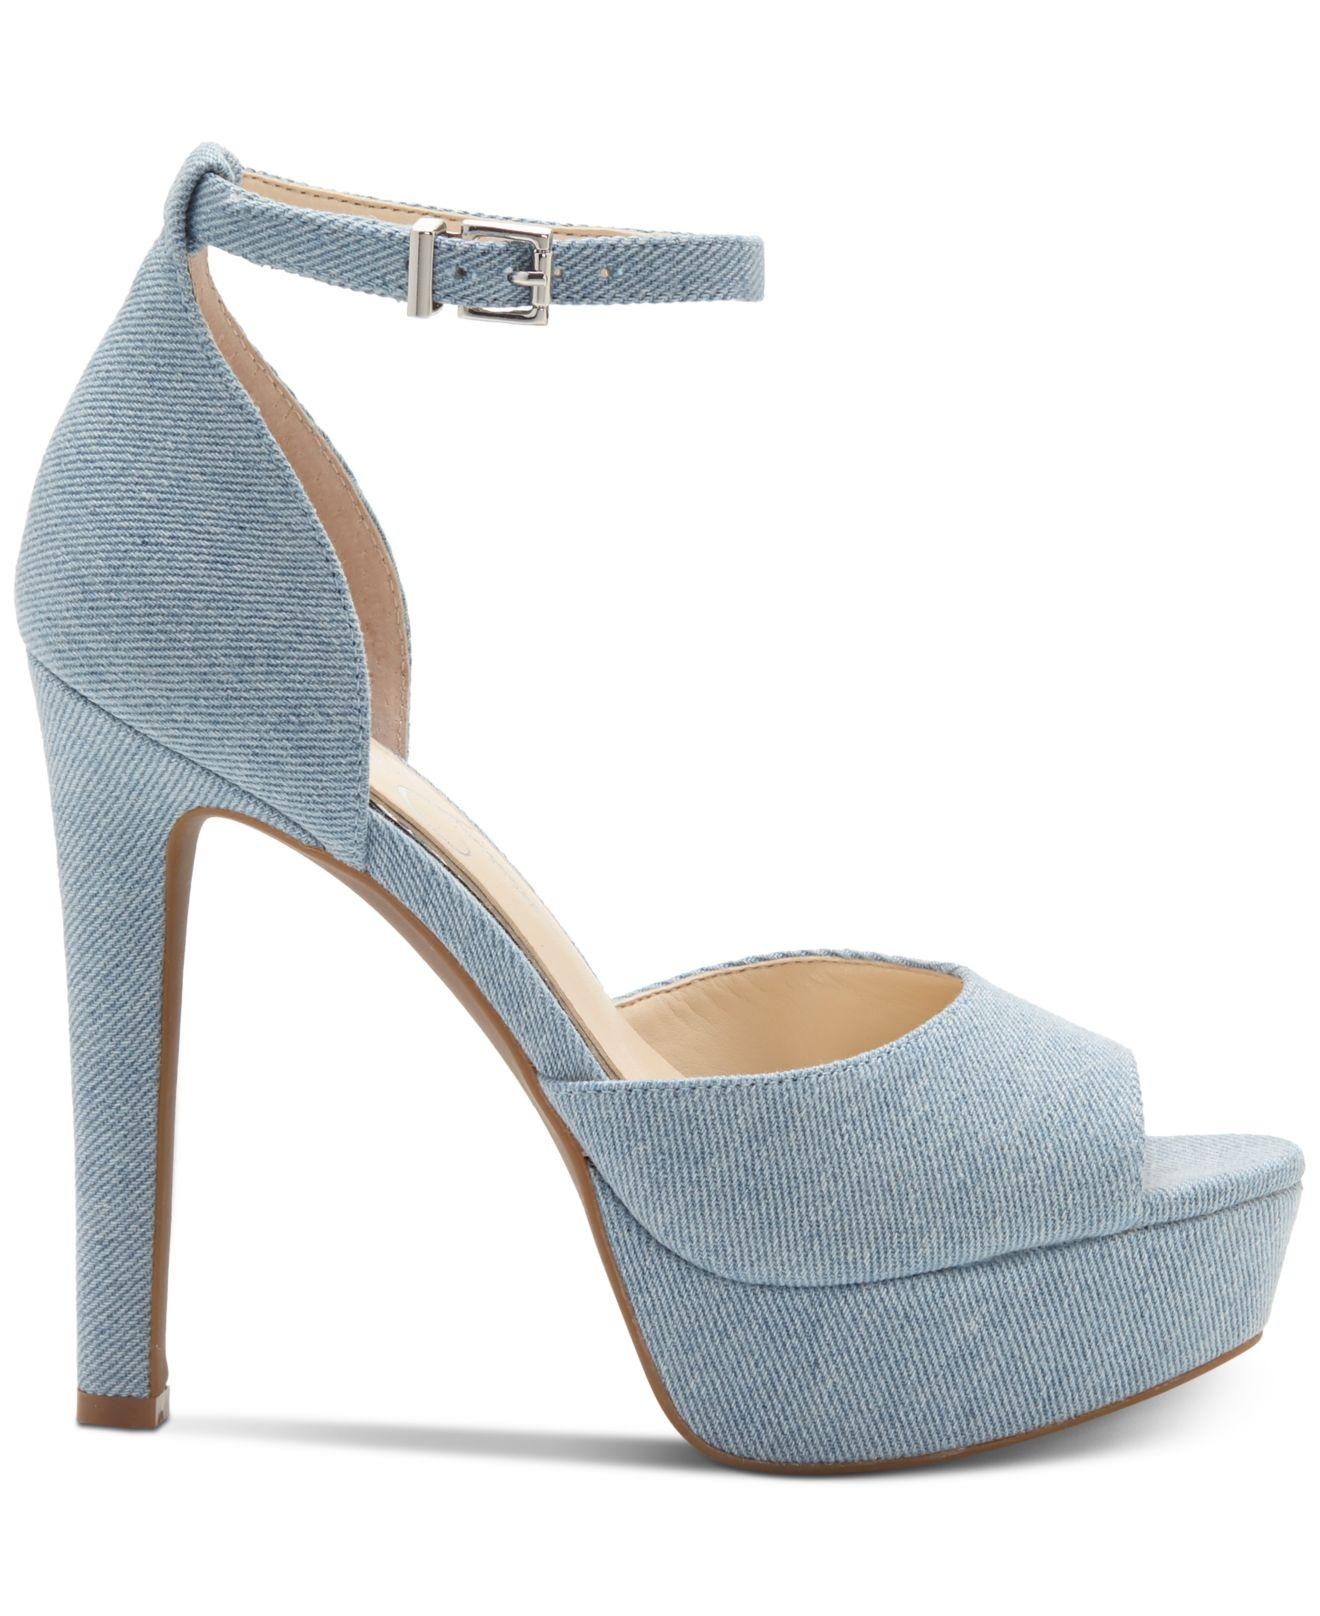 1074801621c Lyst - Jessica Simpson Beeya Two-piece Platform Sandals